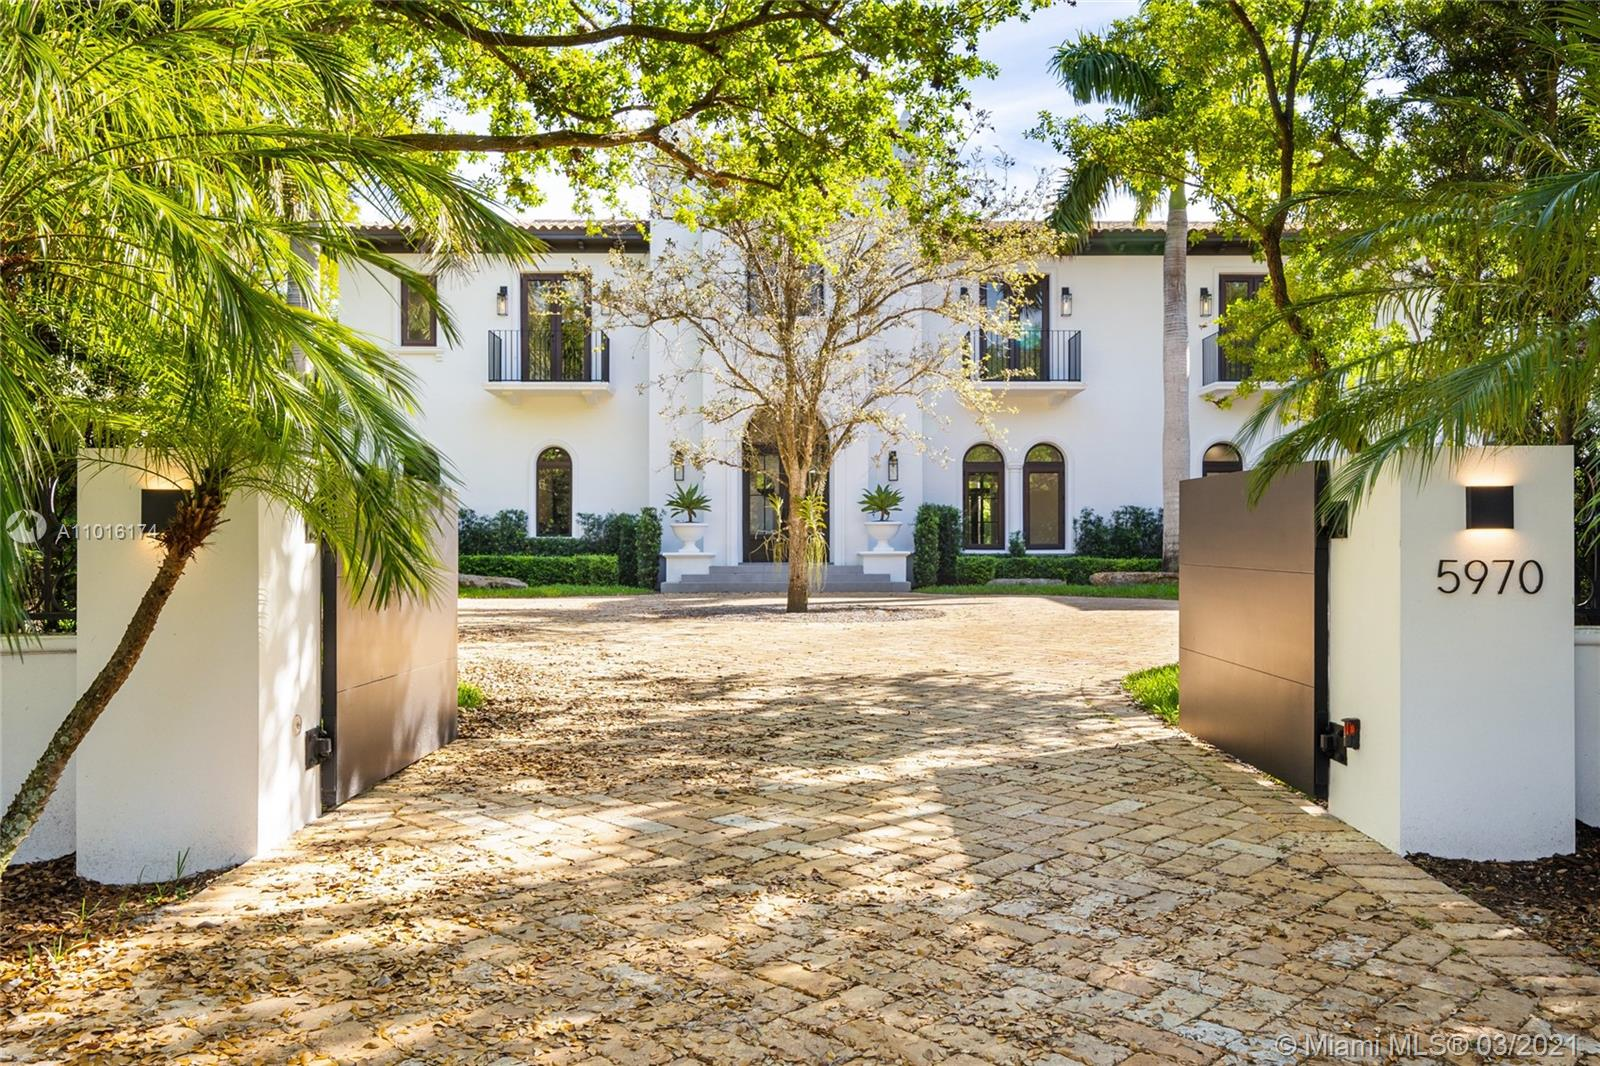 Completely renovated in 2020, this timeless estate is the epitome of Miami lifestyle. Enter through the dramatic foyer and fall in love with the curved staircase and rustic wood beamed ceiling. Designed by Ramon Pacheco with a Modern & traditional blend made to seamlessly enhance visual impact throughout. Architecturally-rich home has 9,848 total sq/ft with 7BD/7.5BA on a private builder's acre with majestic oaks. The kitchen is an epicurean dream with Wolf/Sub Zero appliances & floor to ceiling stained oak cabinets. Open family room with built-in custom bar. Grand 1st floor master suite with stunning bathroom. Smart home with Control 4 automated system. Built 15.2' above sea level with impact resistant windows/doors to insure you'll be prepared for any climate! Wine cellar and elevator.